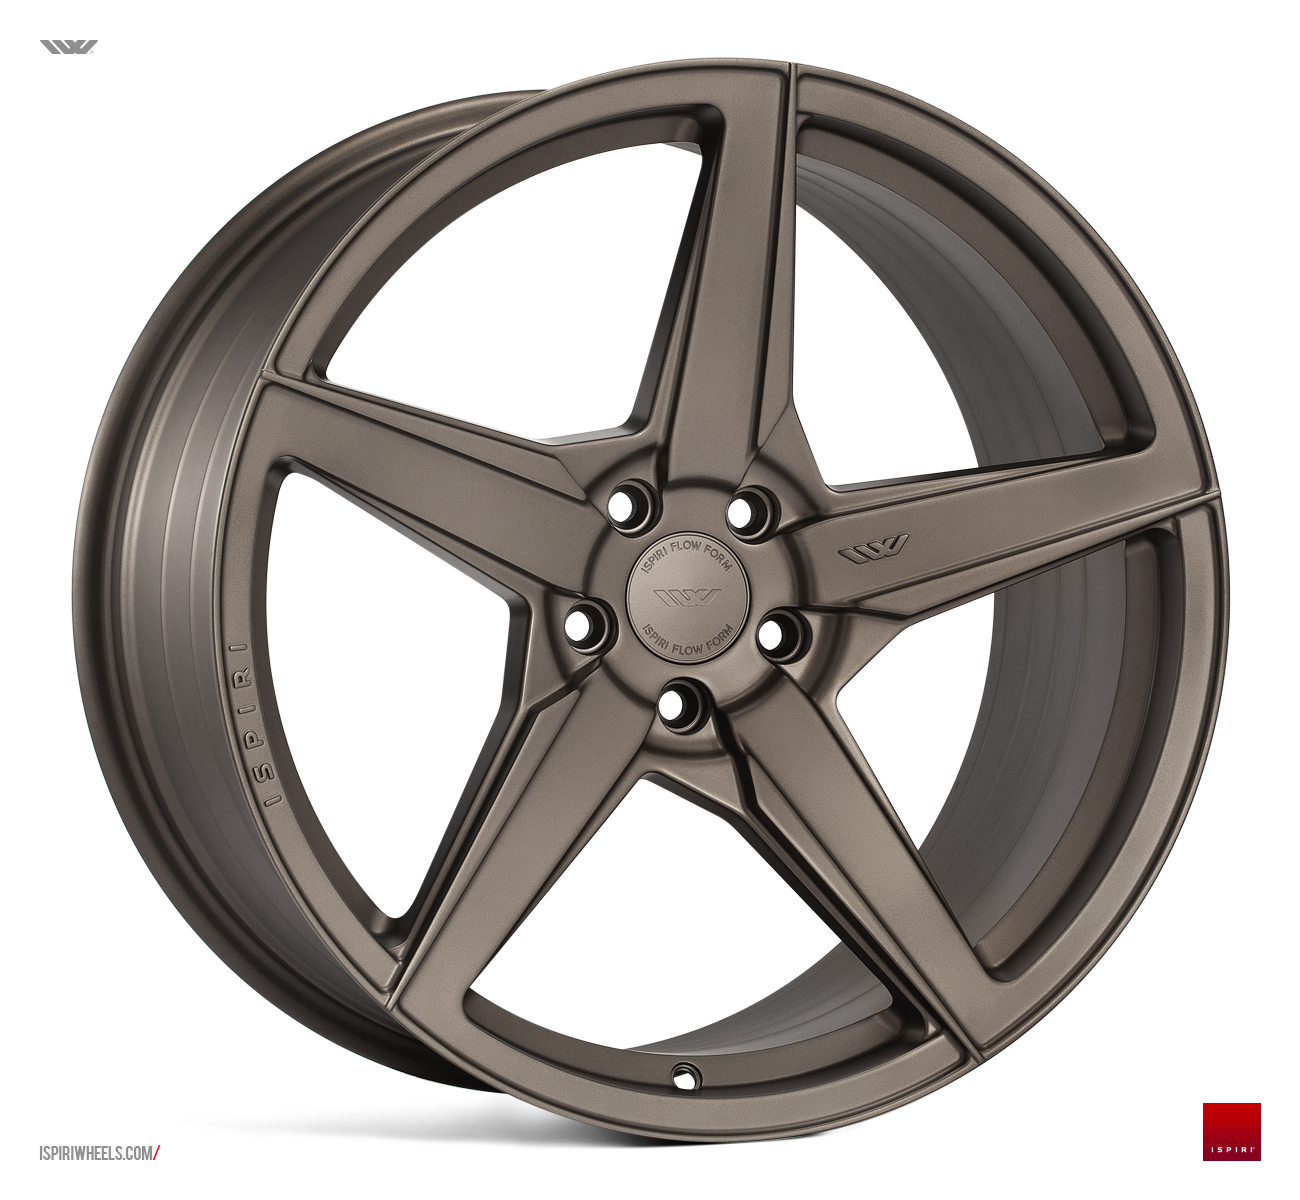 "NEW 20"" ISPIRI FFR5 5 SPOKE ALLOYS IN MATT CARBON BRONZE, VARIOUS FITMENTS AVAILABLE 5x120"